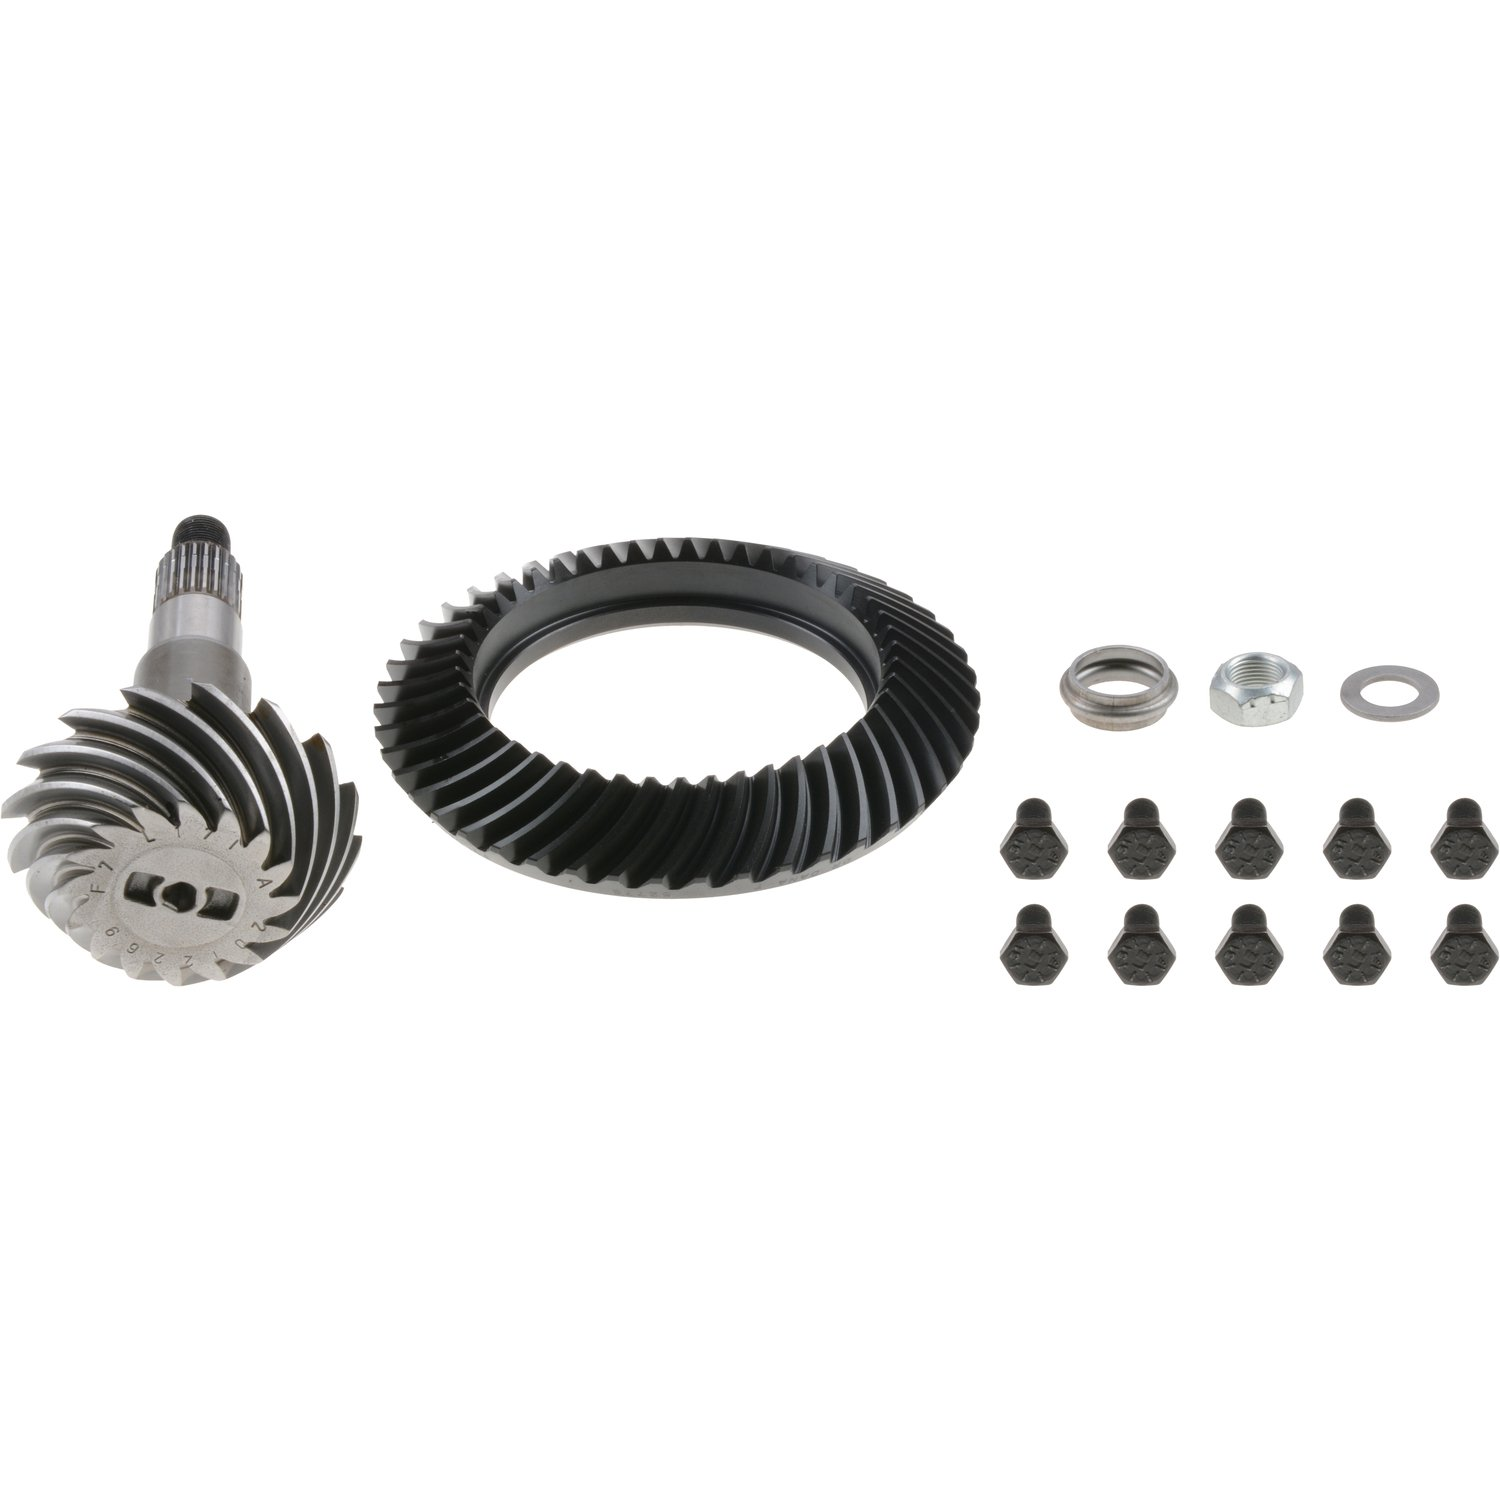 Spicer 2002551-5 Ring and Pinion Gear Set by Spicer